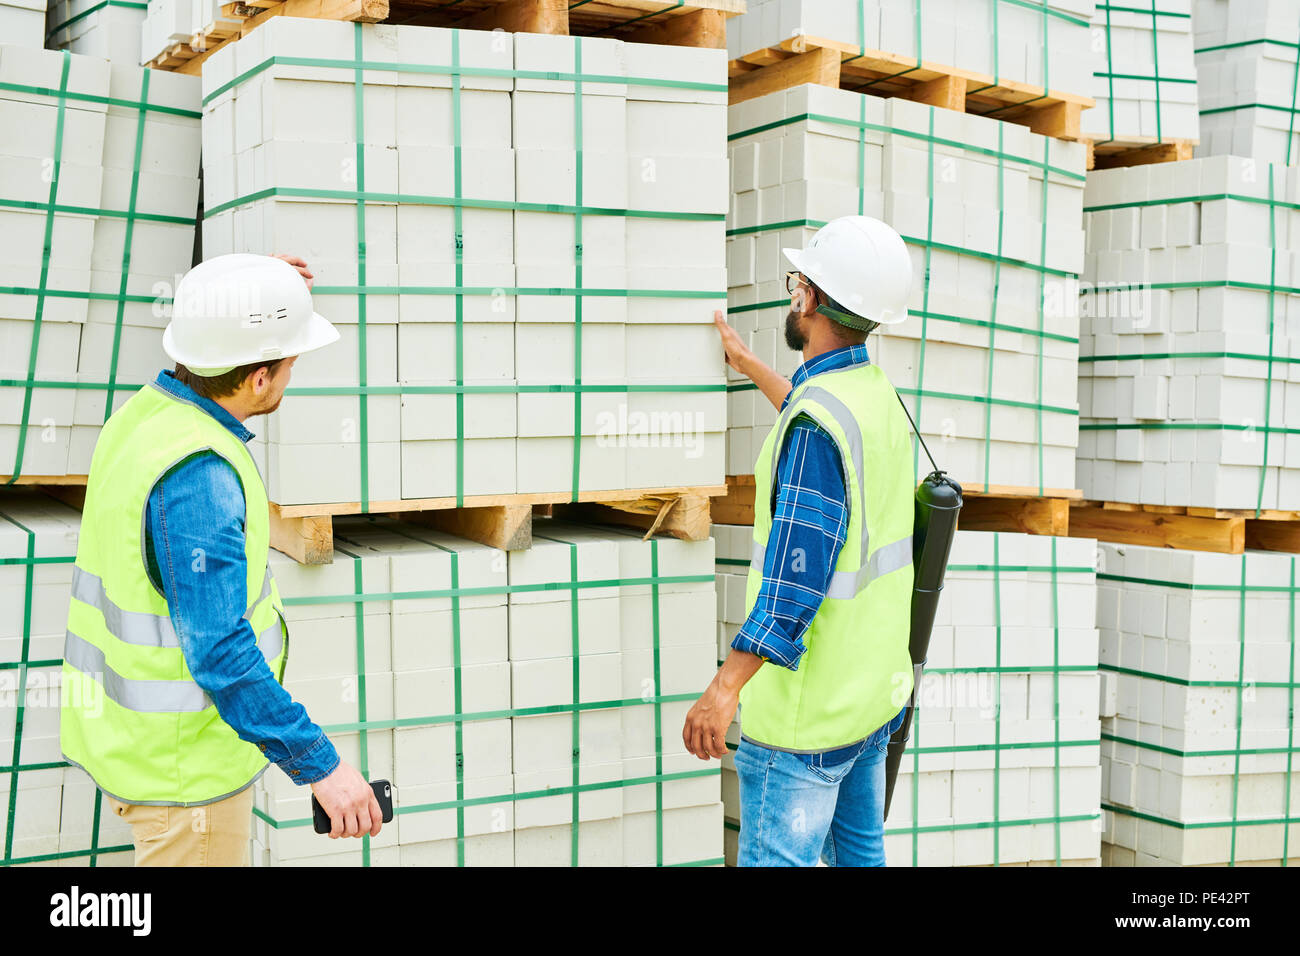 Anonymous building inspectors looking at materials - Stock Image